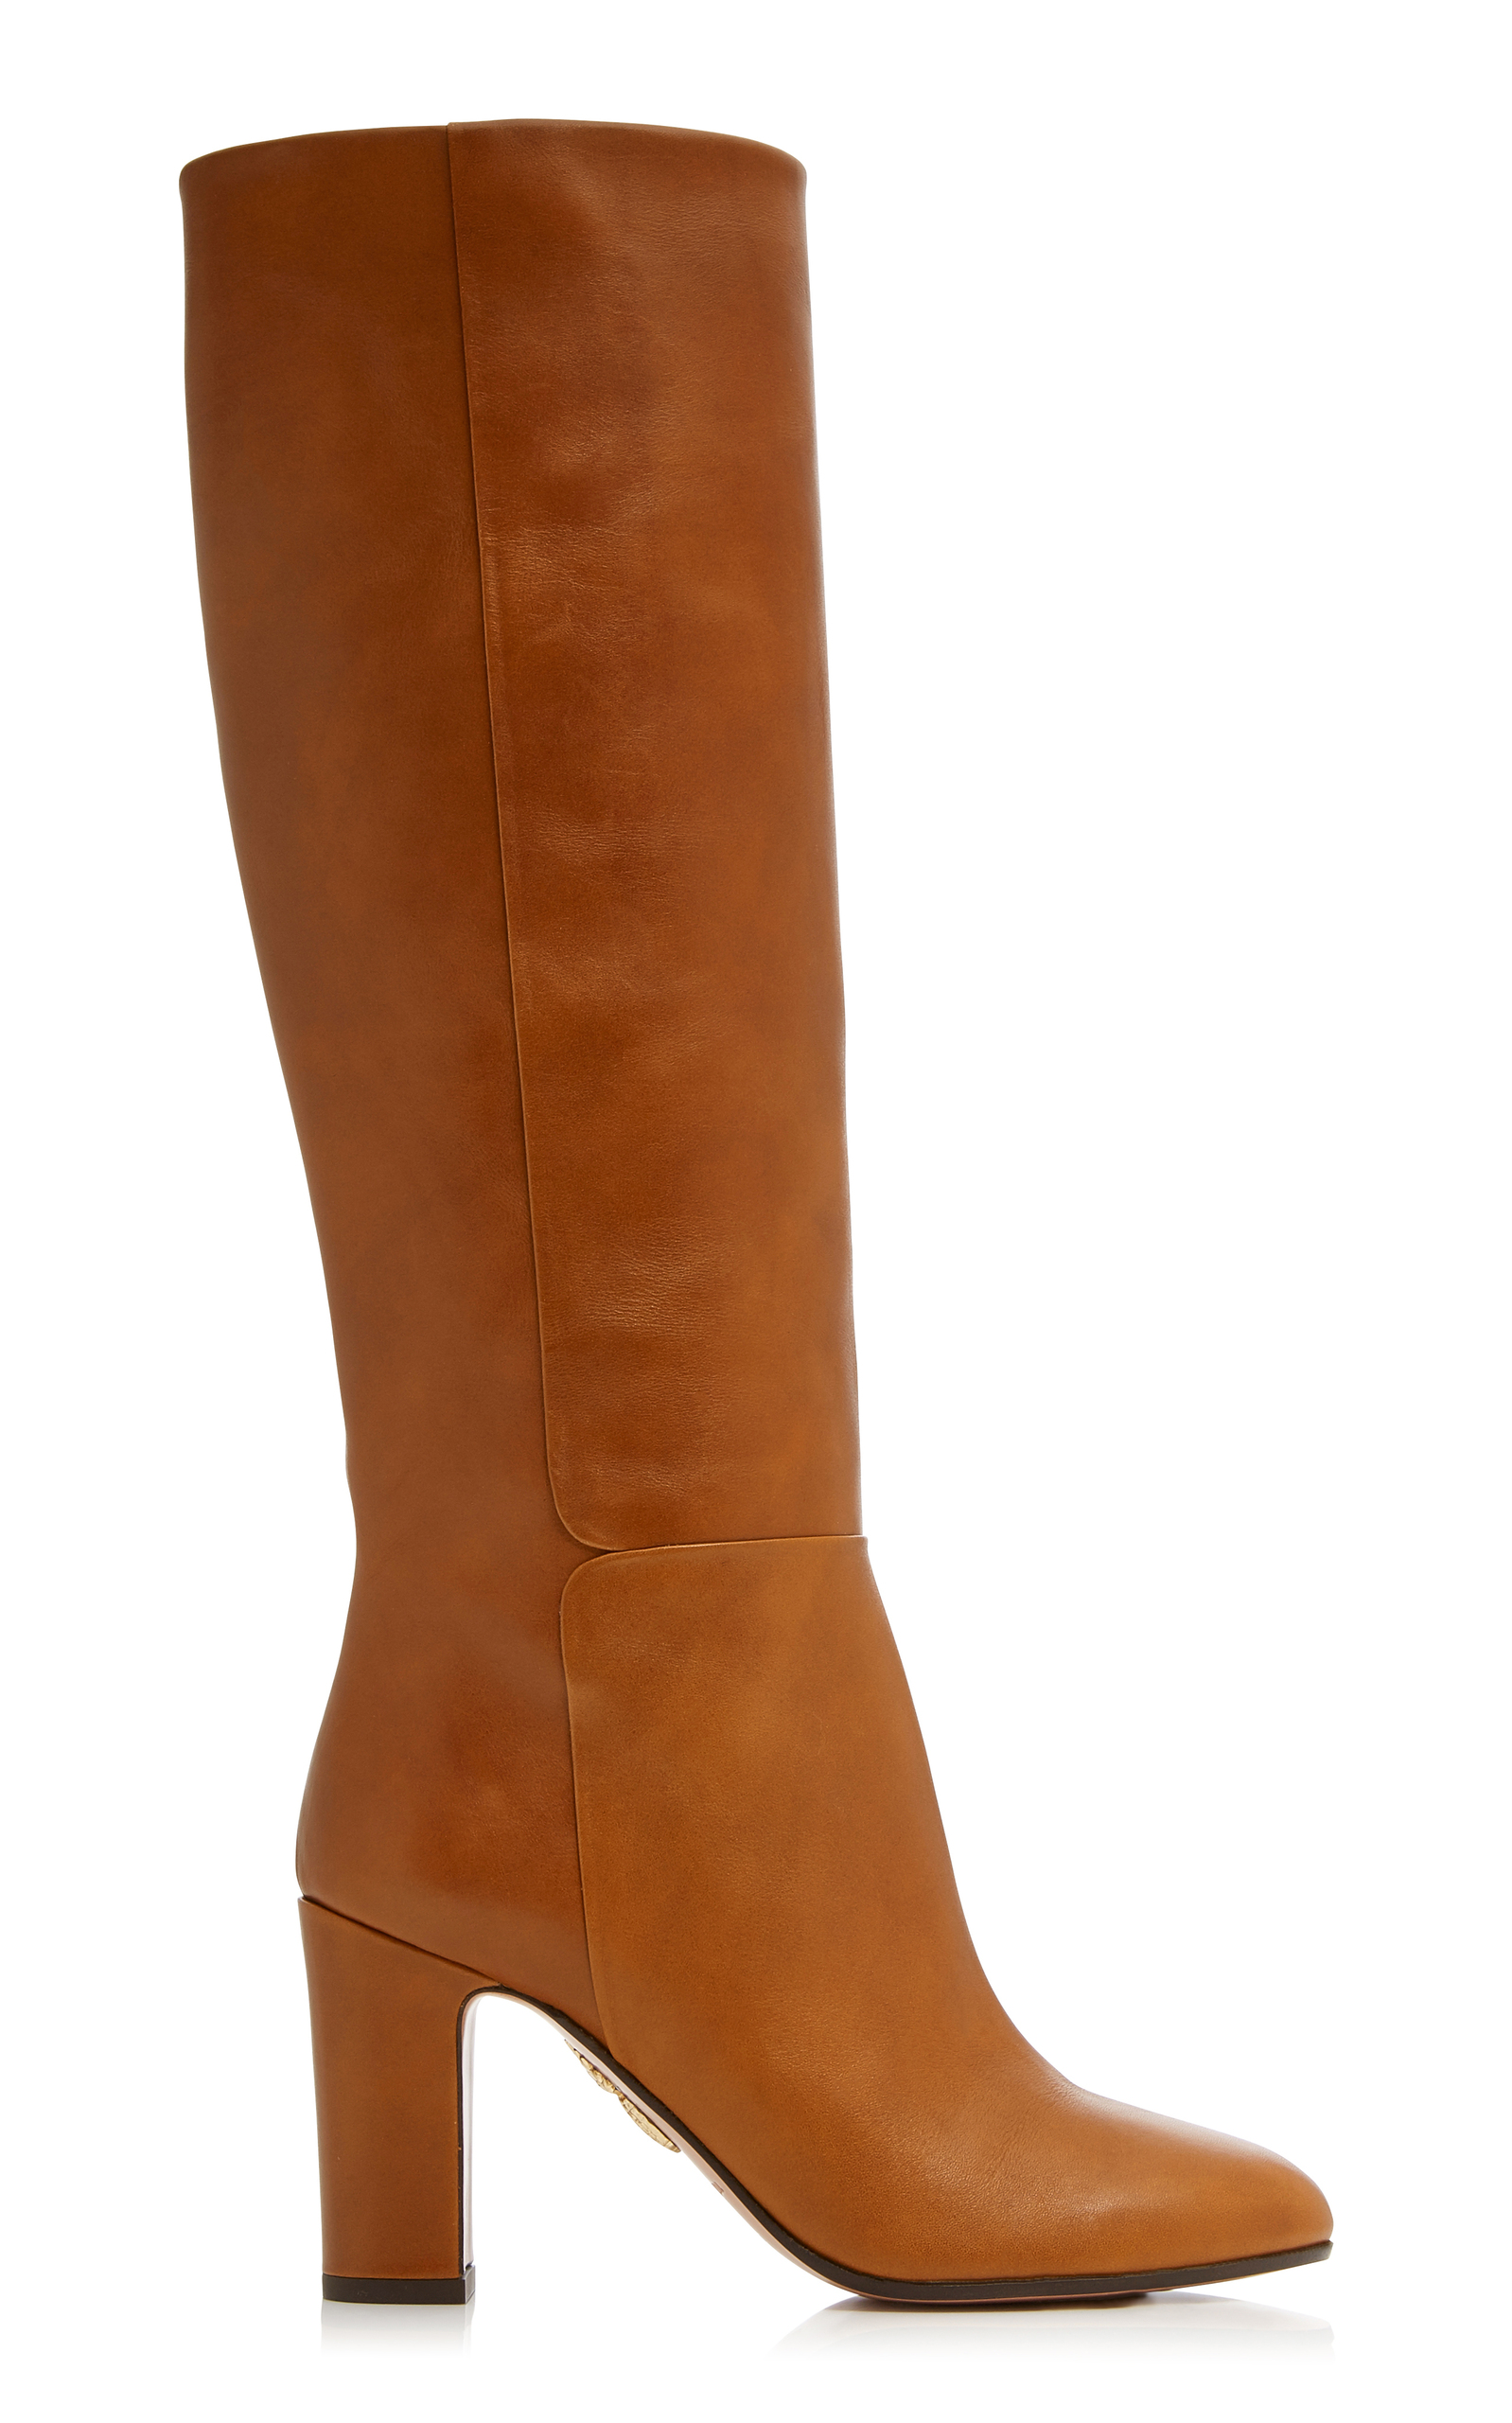 6f1e001d422 Rennes leather over-the-knee boots